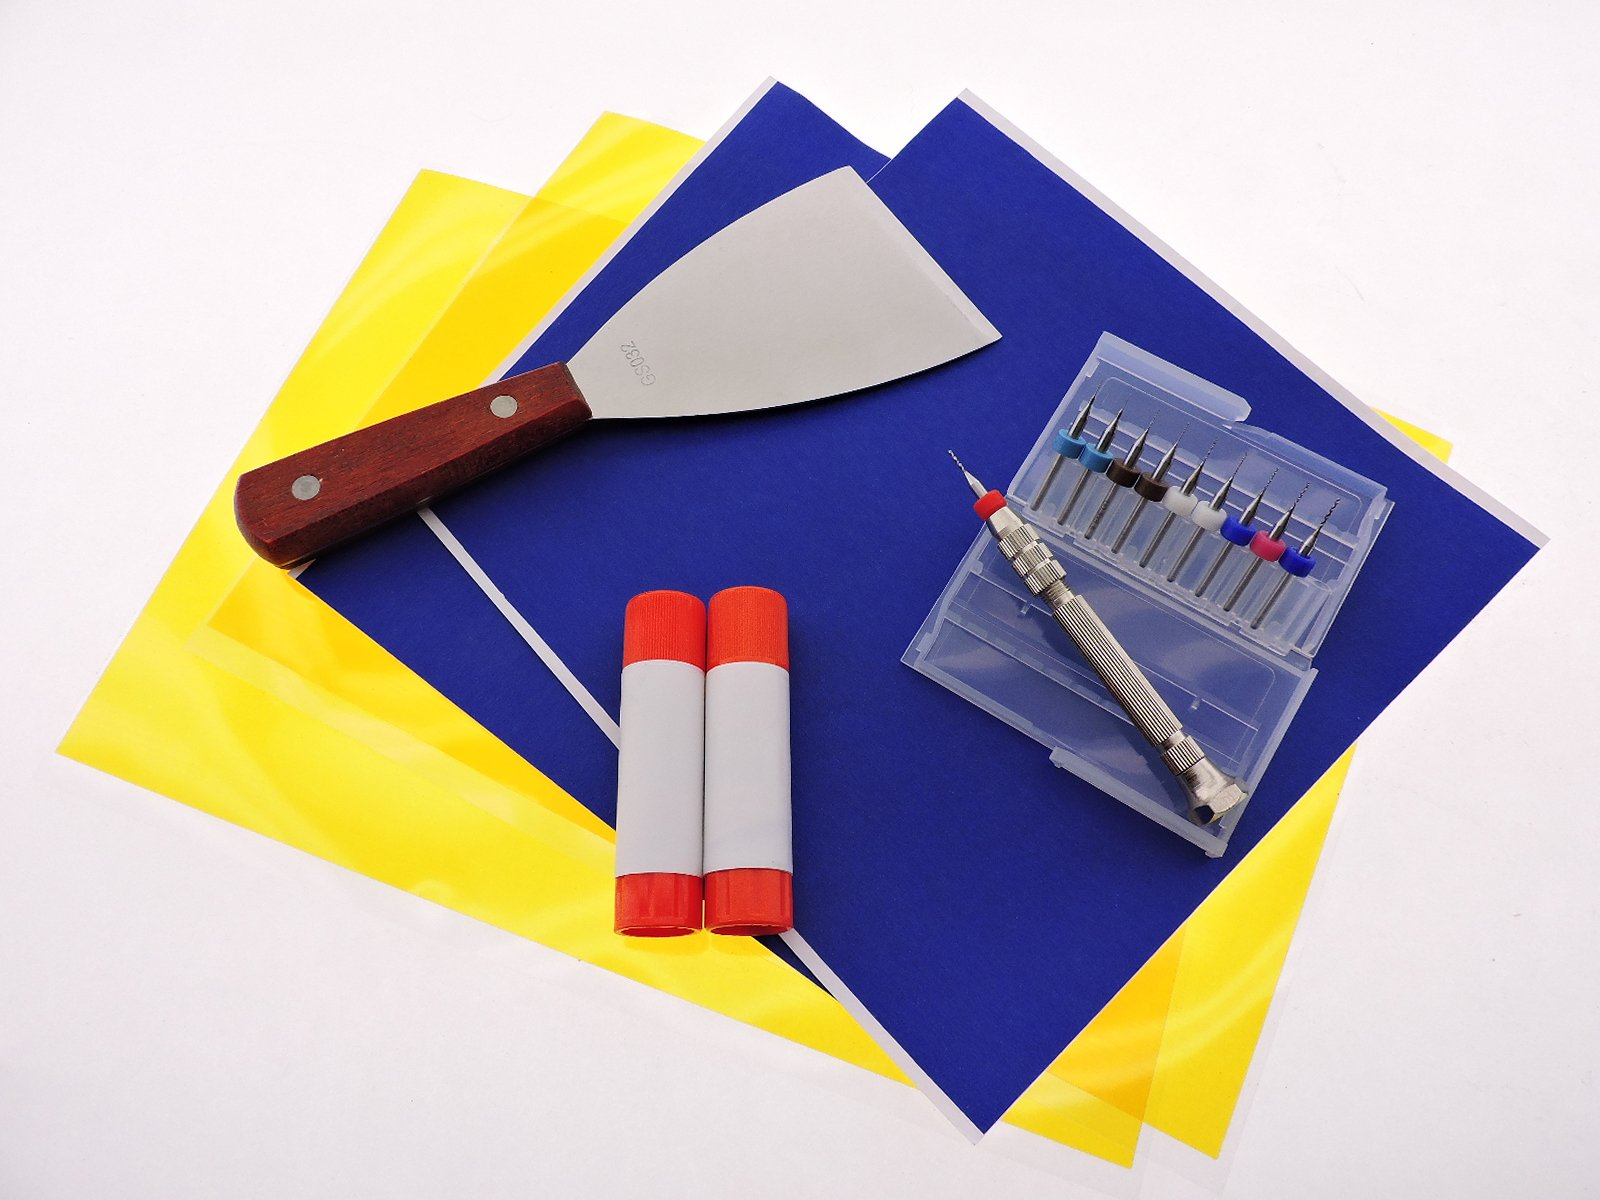 3D Printer Parts Accessories Kit ABS Blue painters tape PLA Kapton Tape + Print bed removal tool + Glue Sticks + (2each) .2mm .3mm .4mm (1each) .5mm .6mm .8mm 1.0mm Clogged Nozzle Bits + Pin-Vise by Daewon Industries